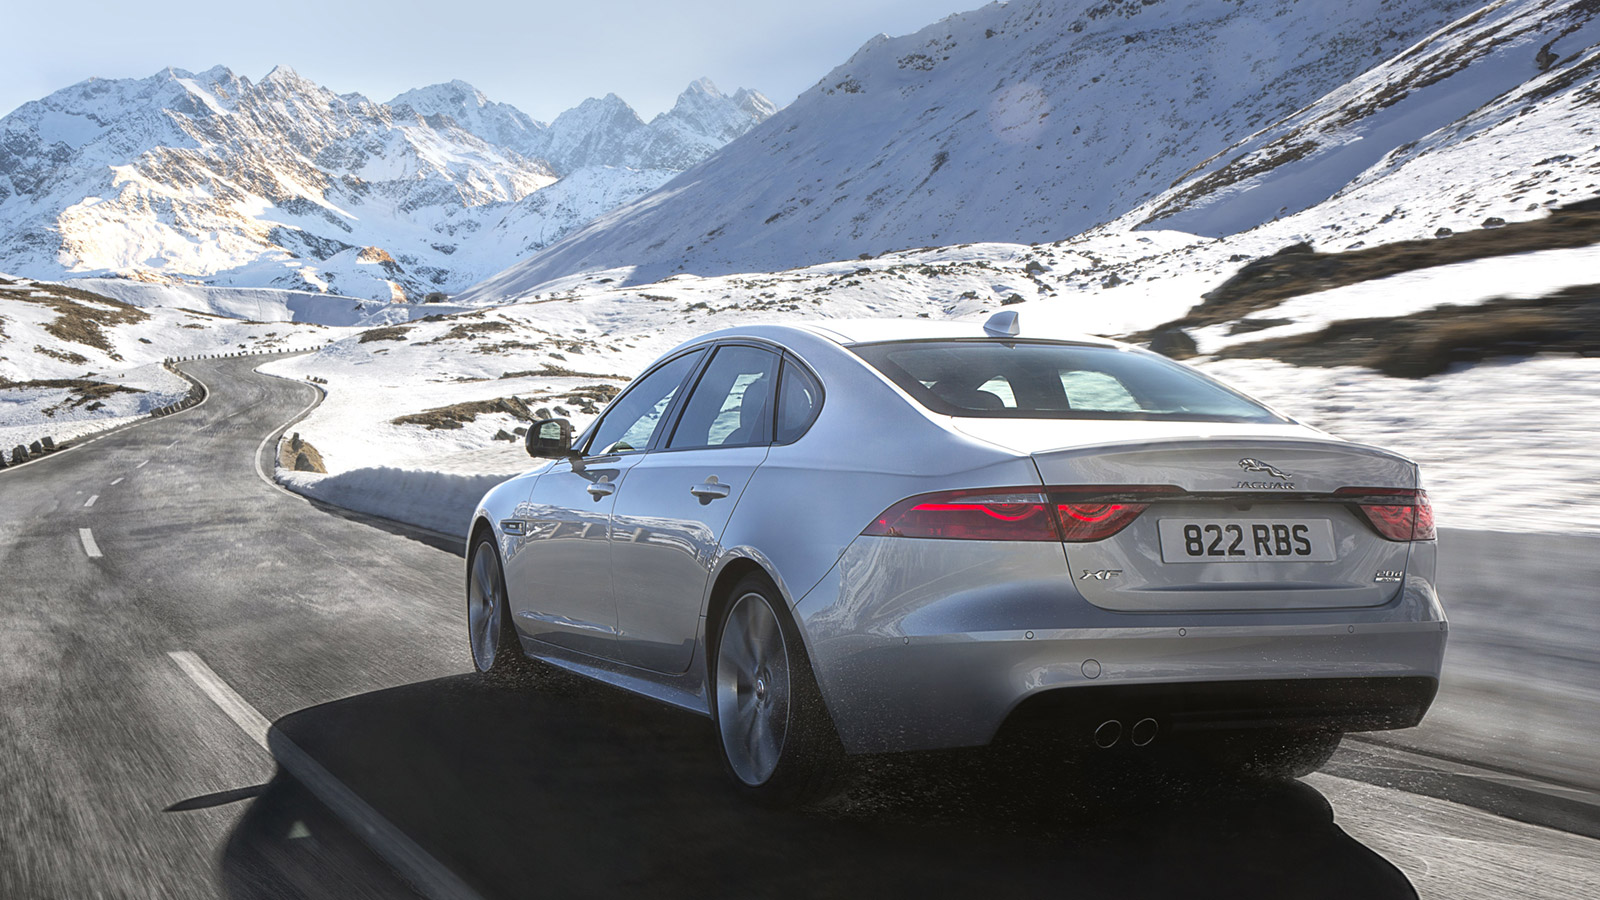 Rear view of Jaguar XF R-Sport, driving through snowy mountains